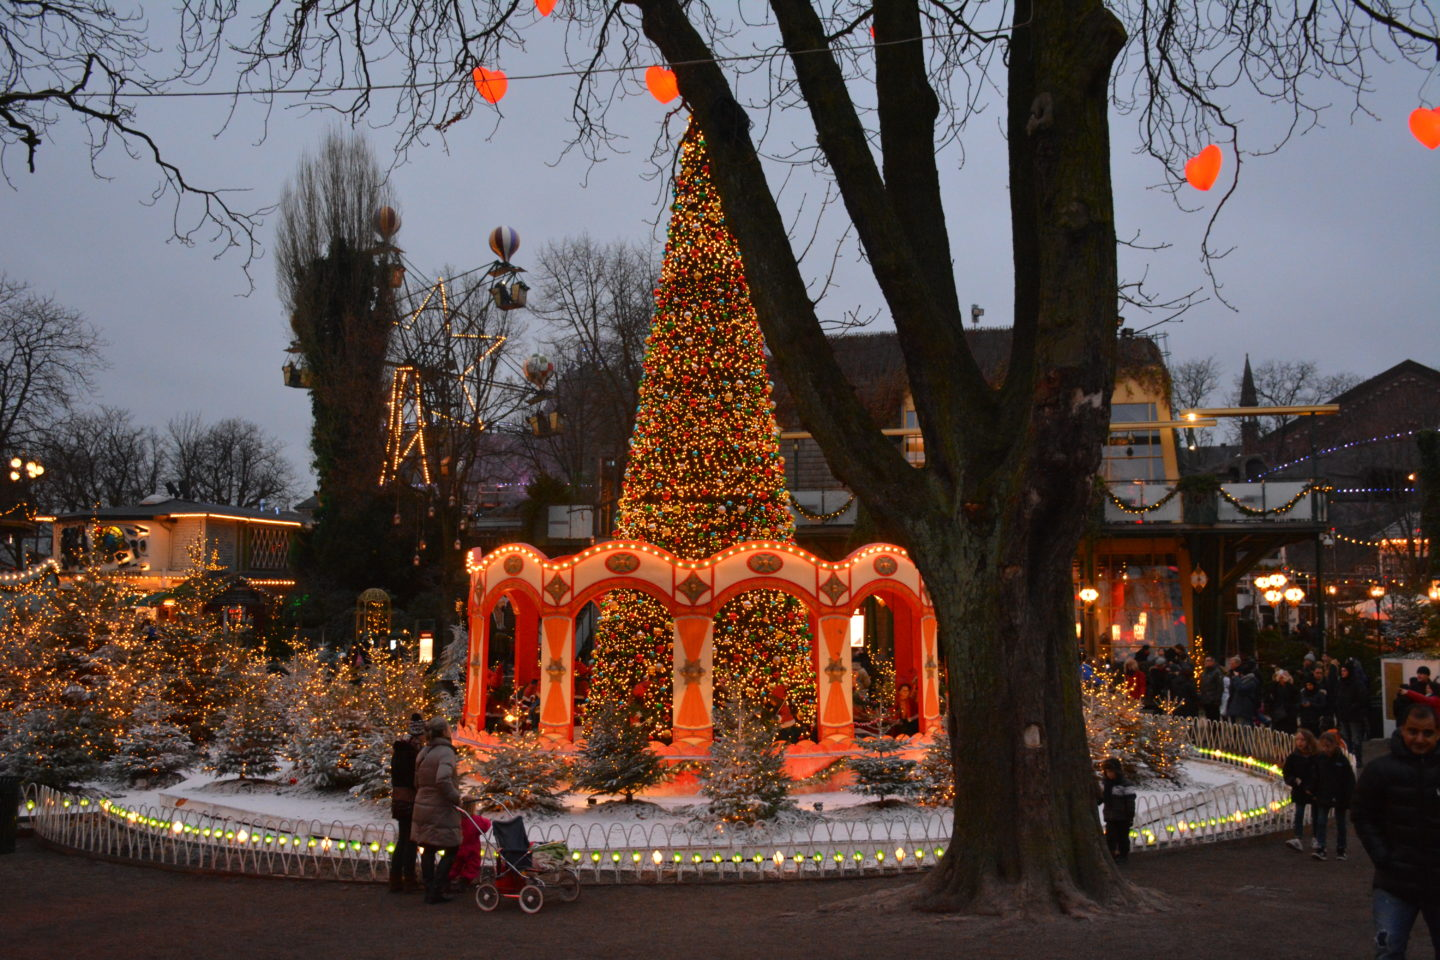 A Christmas tree in Tivoli Gardens, Copenhagen